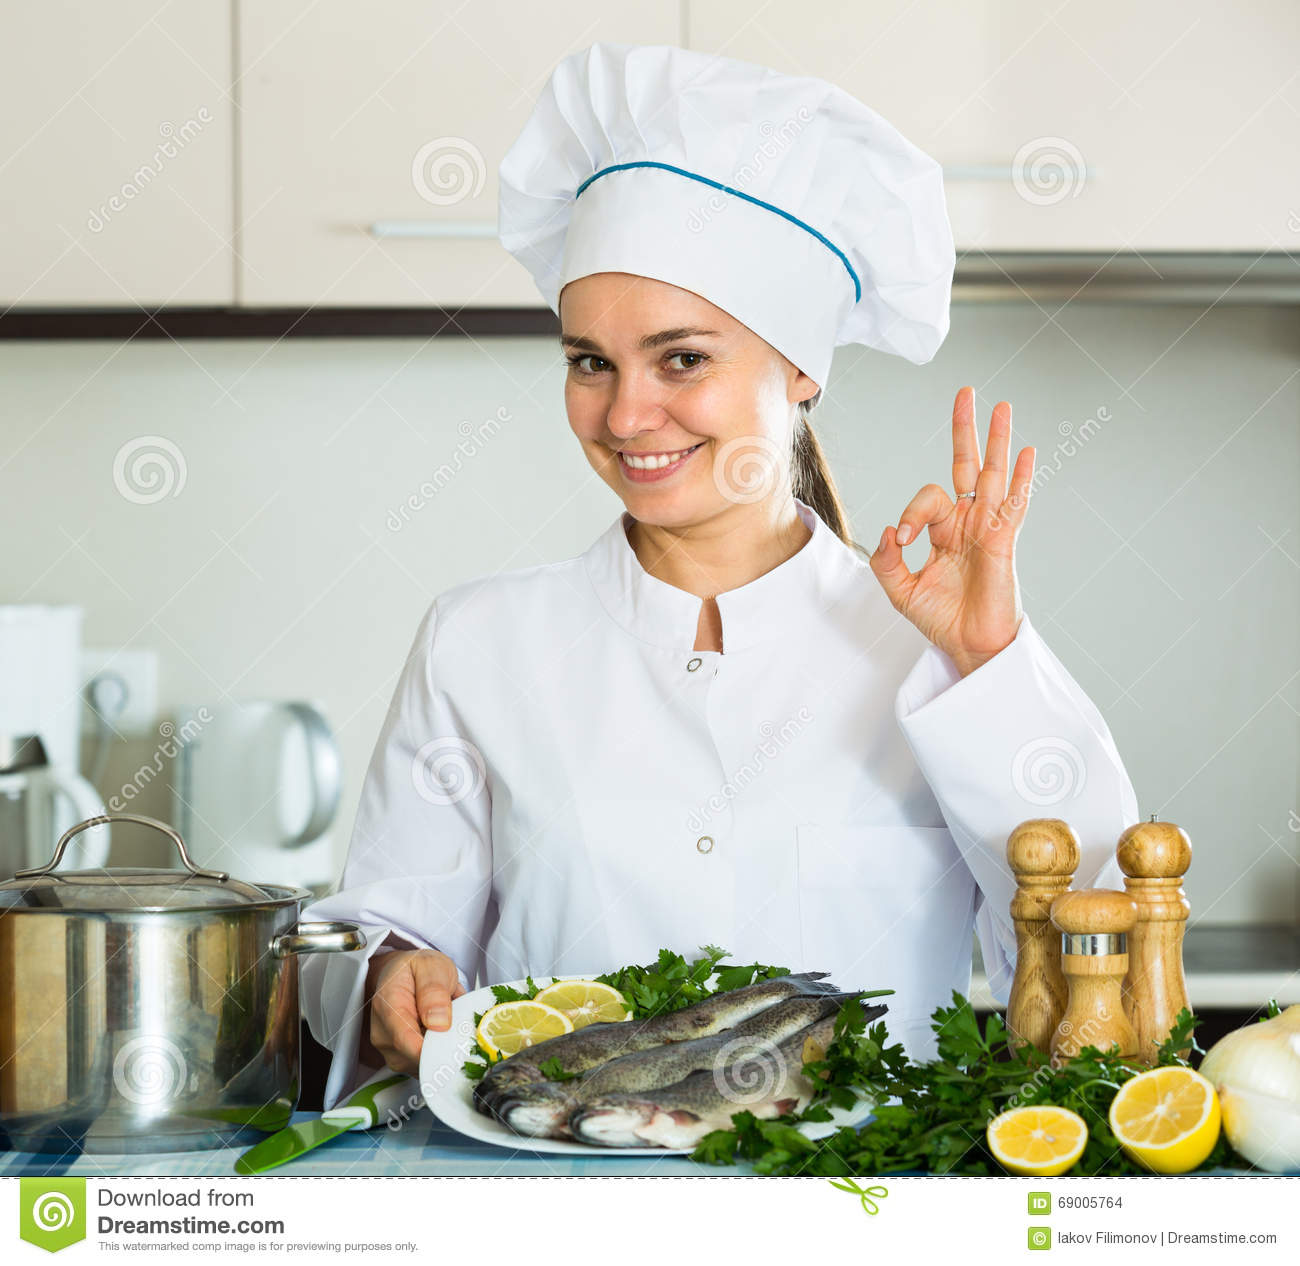 Female chef in kitchen stock photo. Image of board, diet - 69005764